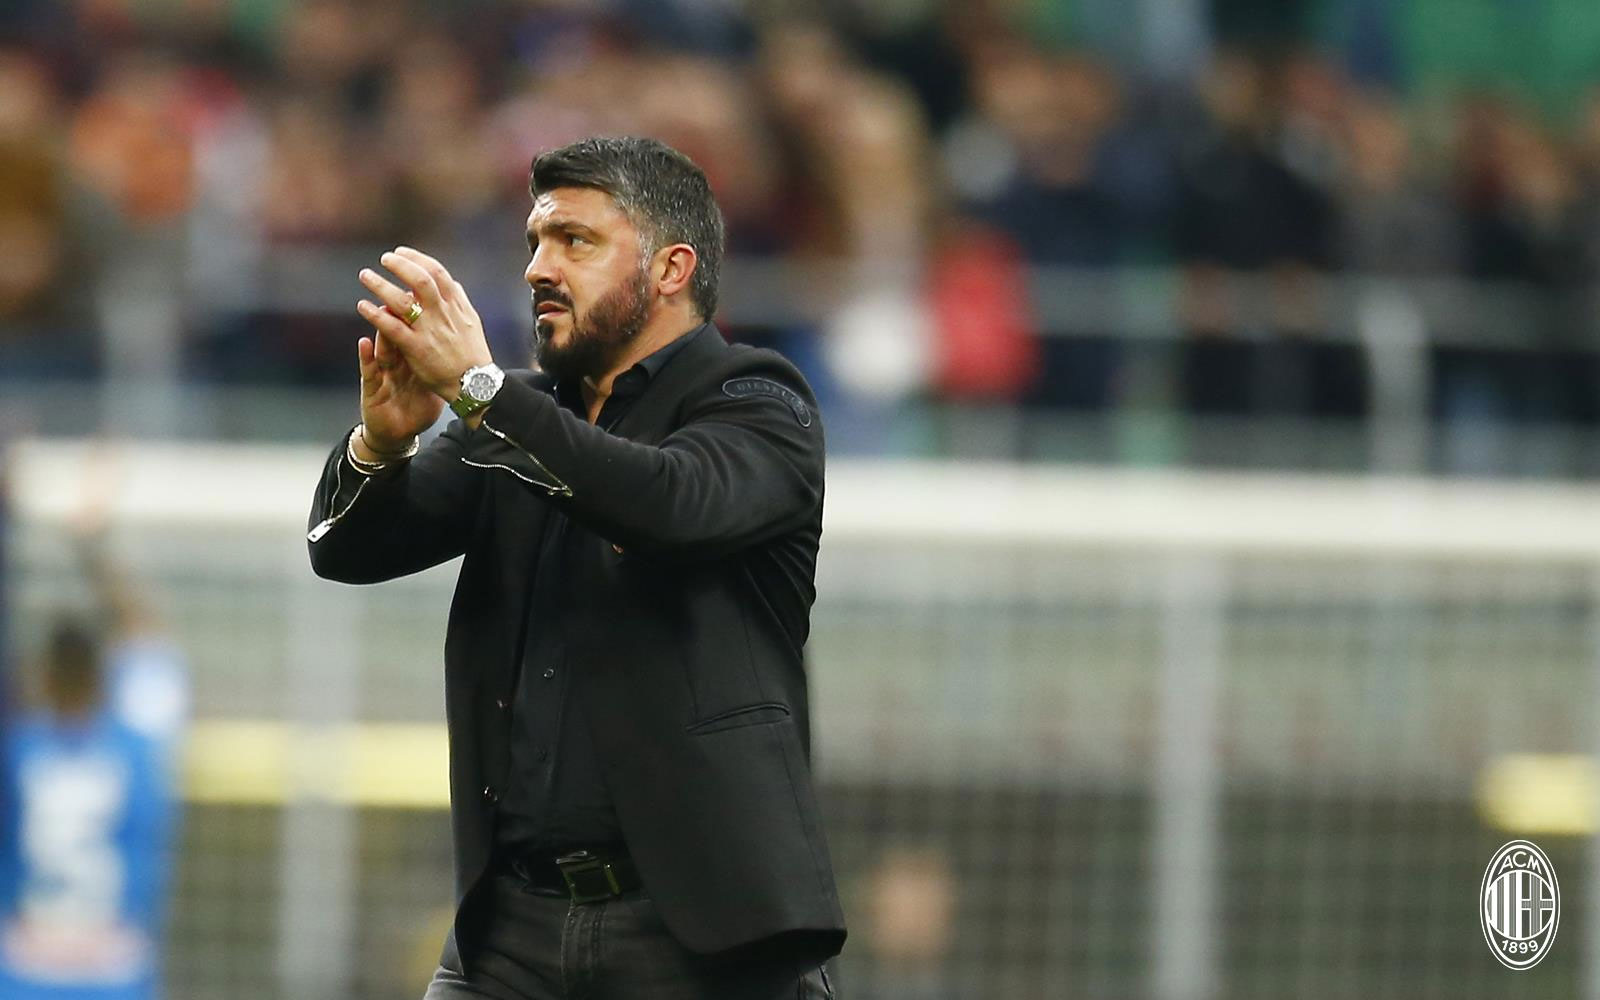 Gennaro Gattuso at the end of Milan-Napoli at Stadio San Siro on April 15, 2018. (@acmilan.com)